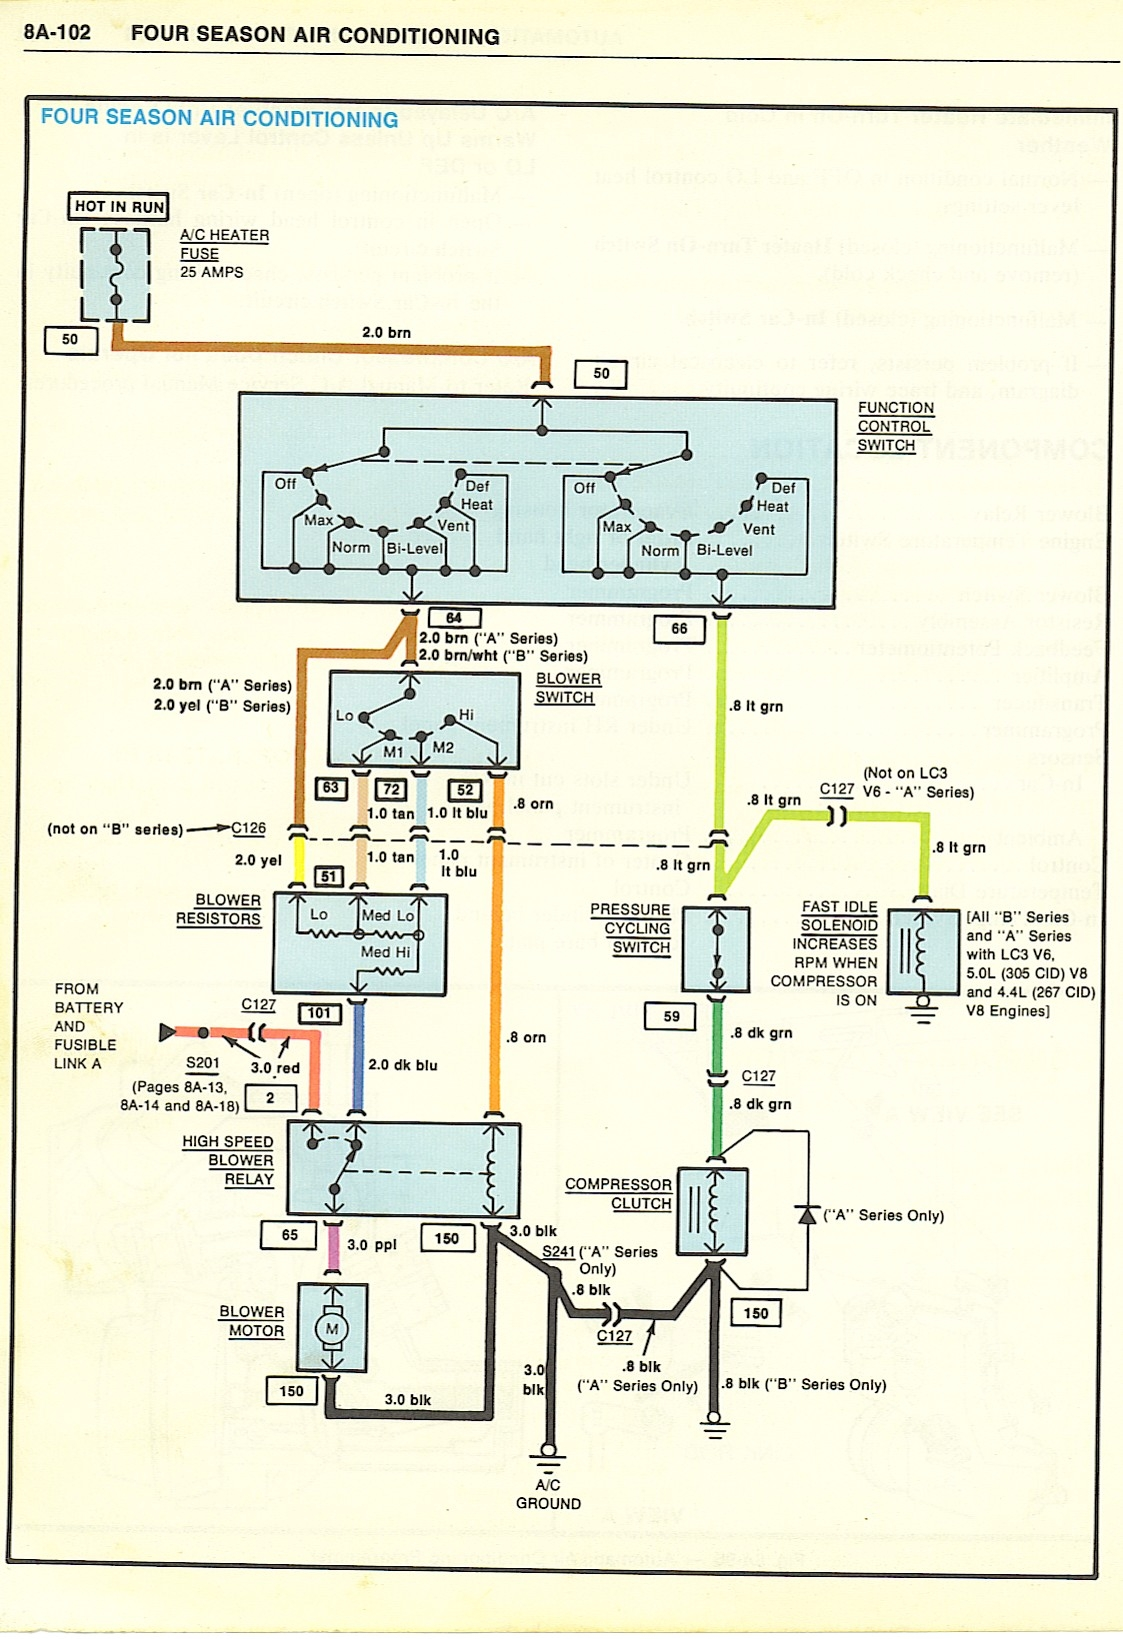 1968 FourSeasonAirConditioner chevy diagrams GM Alternator Wiring Diagram at panicattacktreatment.co